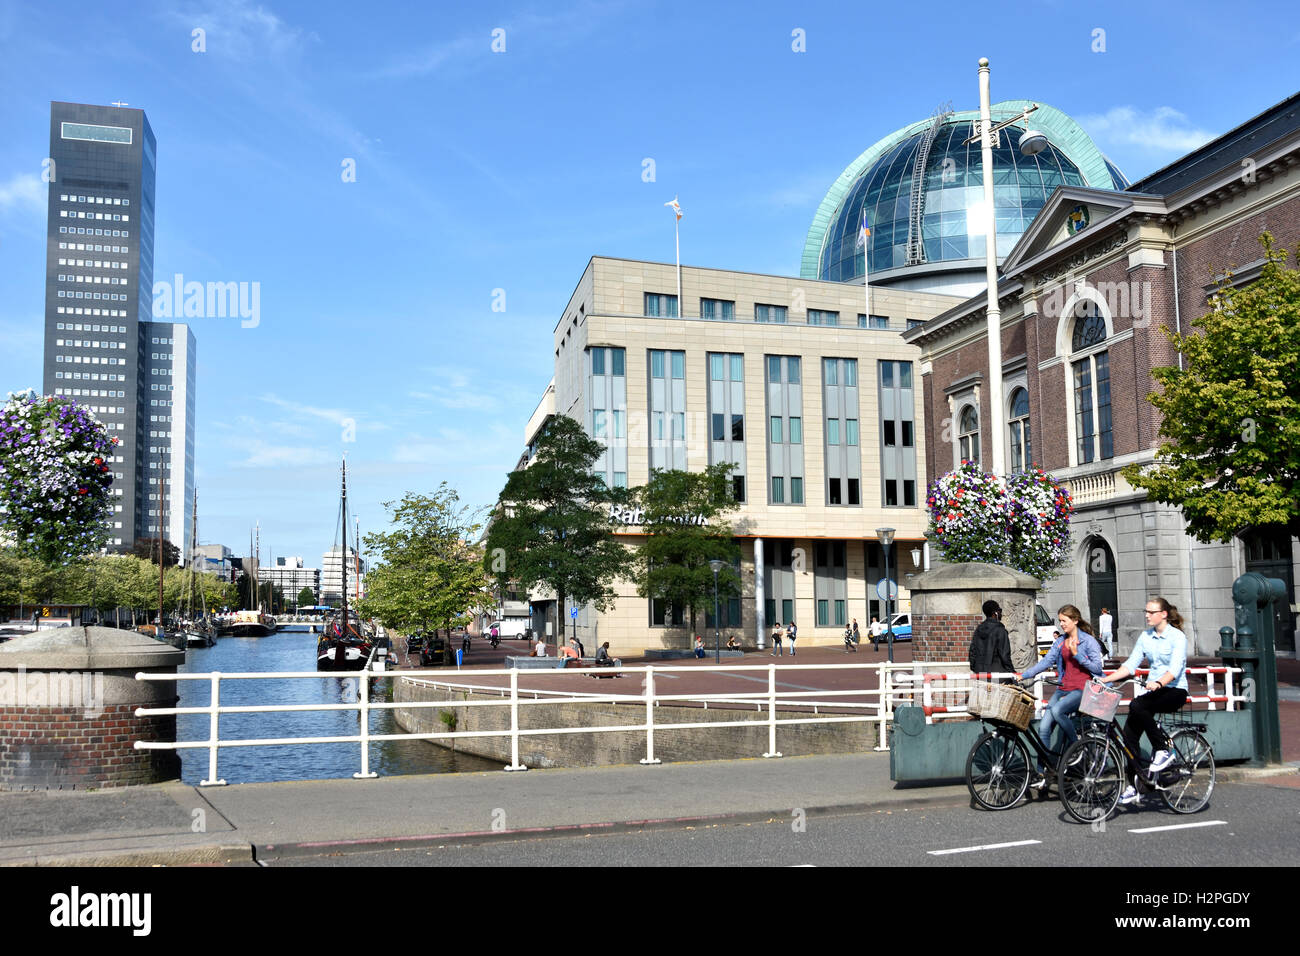 Leeuwarden city  Netherlands Friesland Fryslan old center ( left Achmeatower - Willemskade - Libary and Fries Museum - Stock Image